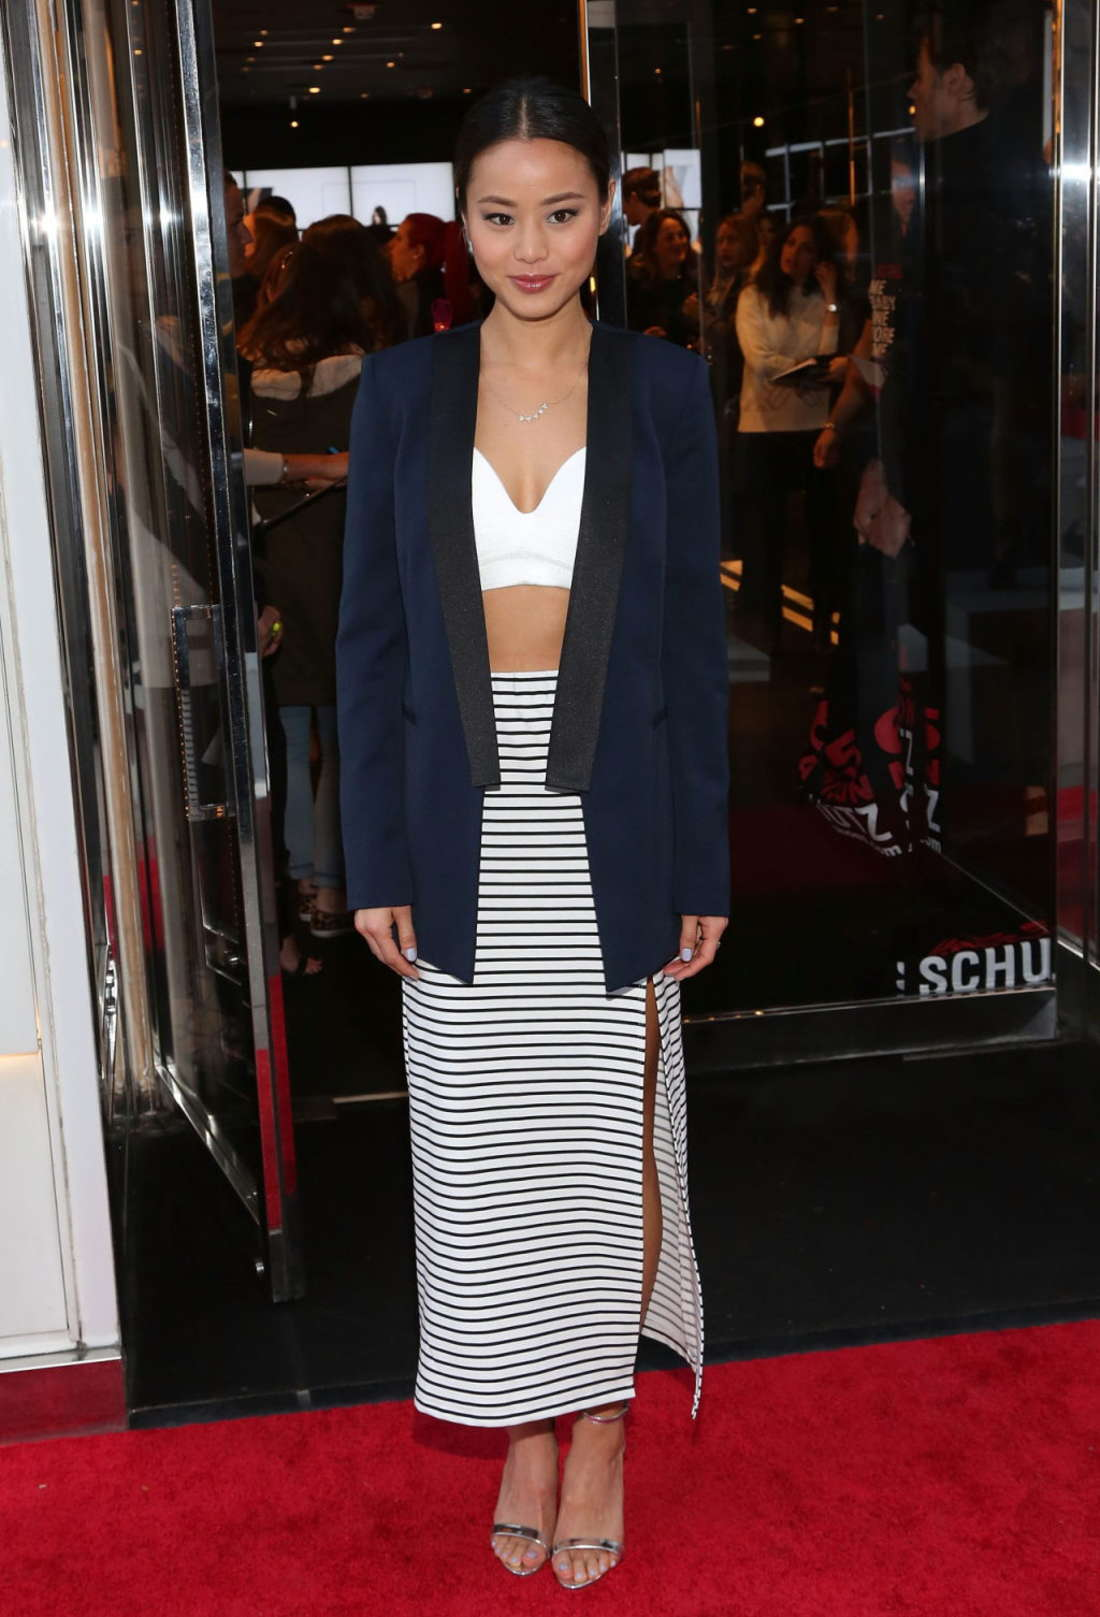 Jamie Chung: Schutz Summer 2014 Collection Launch -09 ...